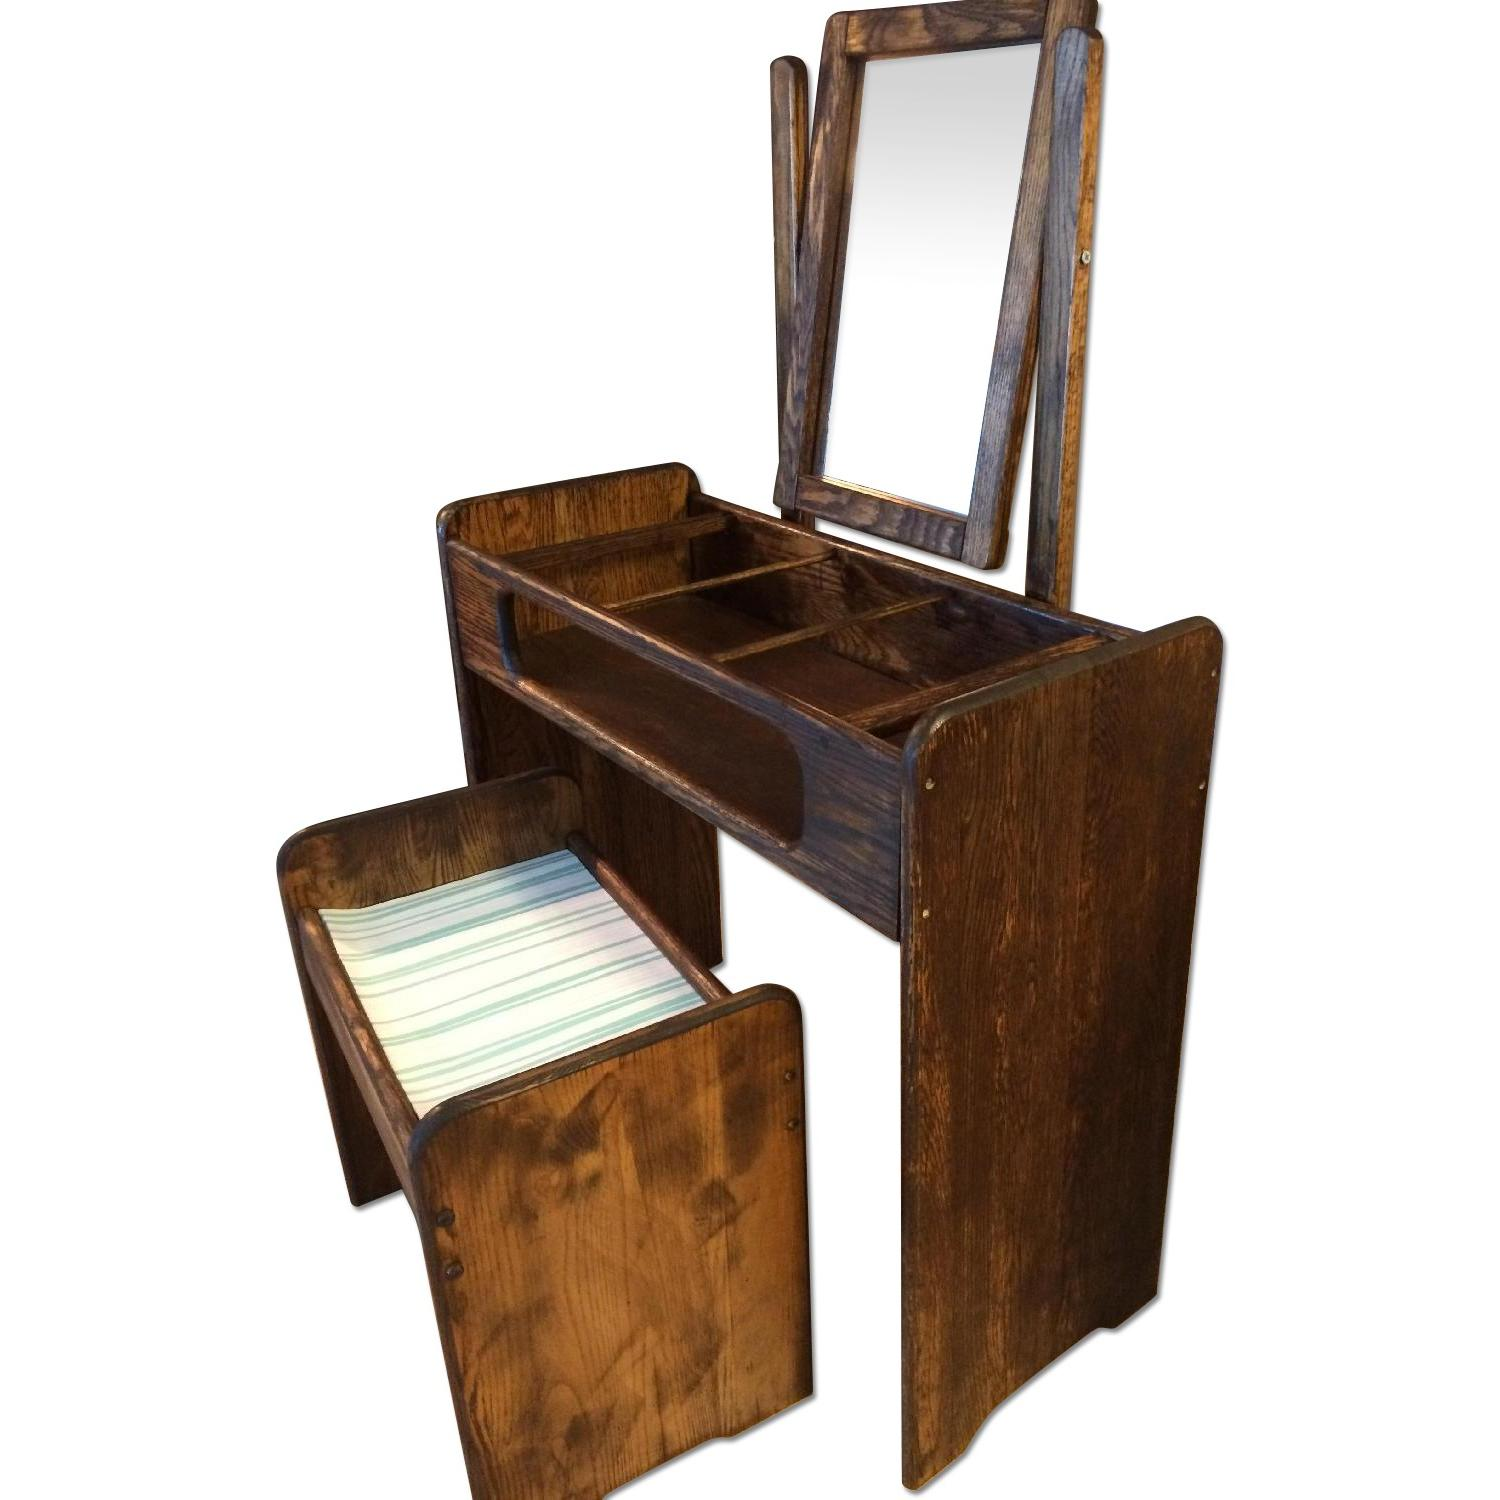 Make-Up/Vanity Table w/ Bench - image-0